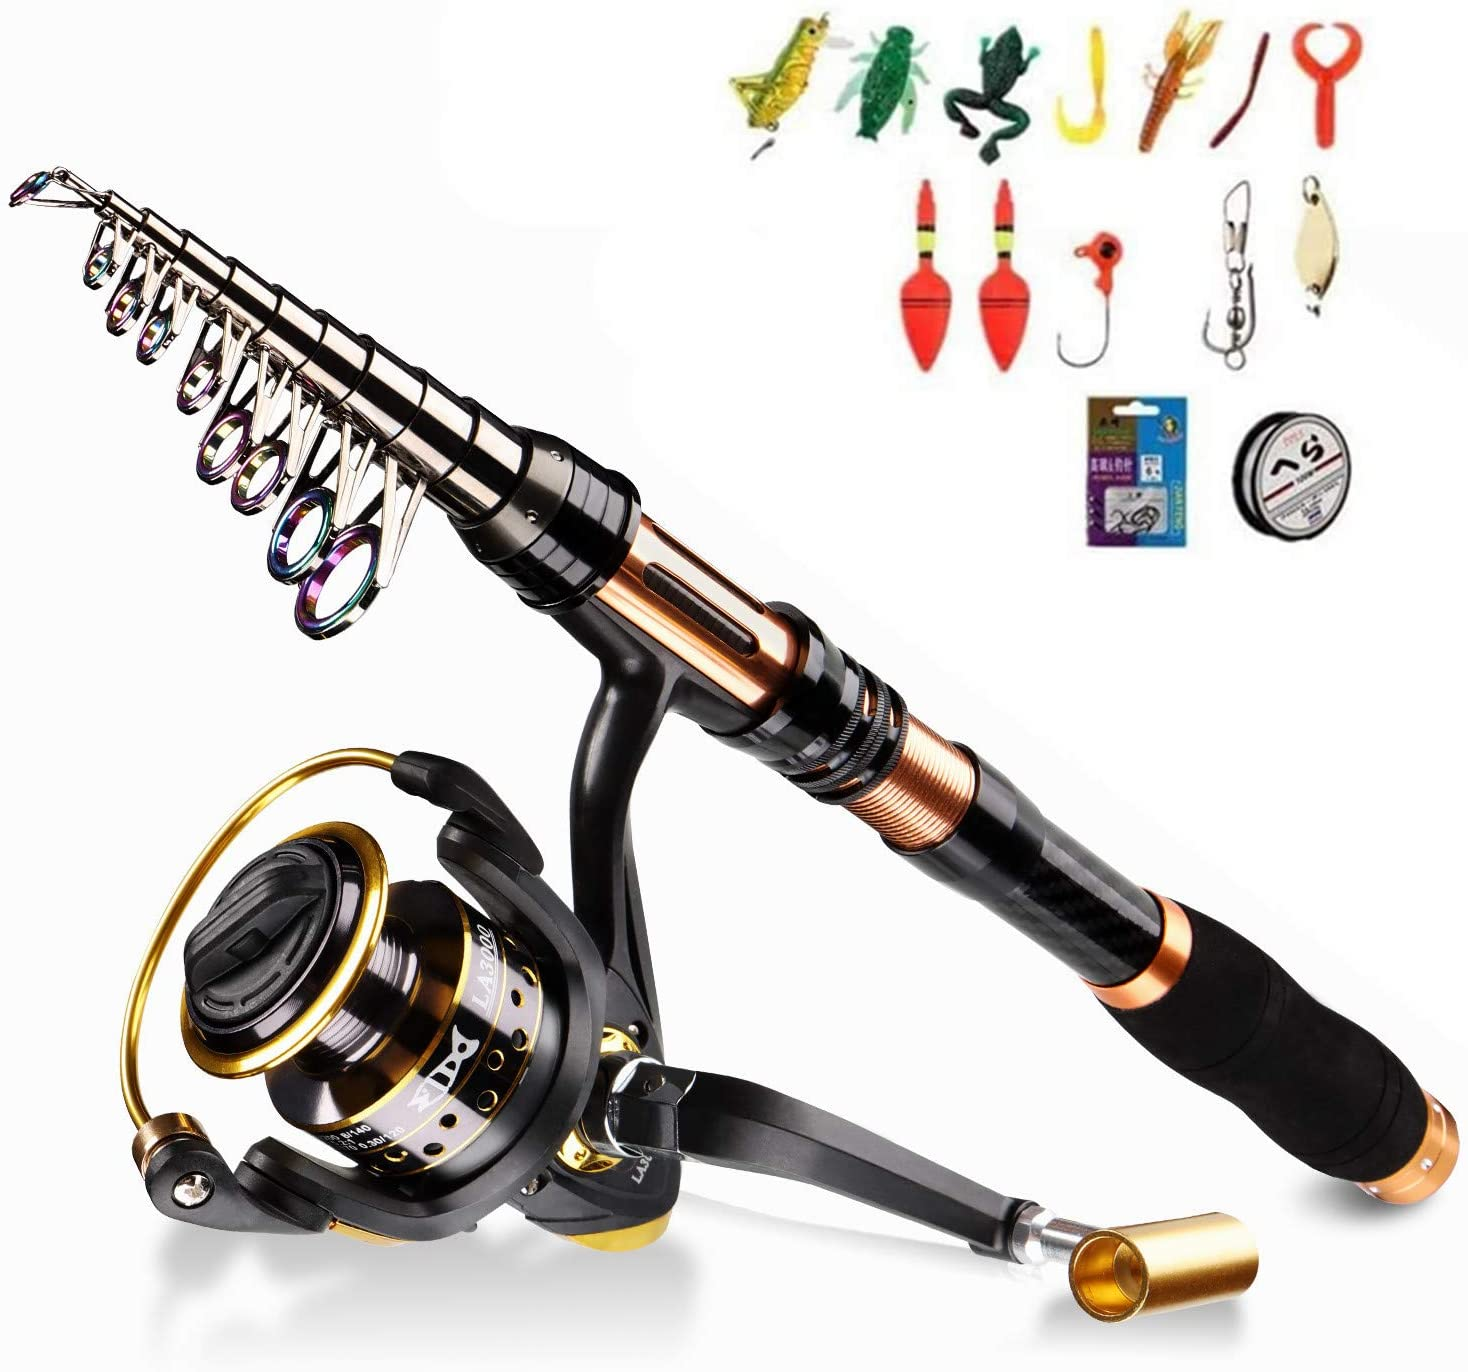 BNTTEAM 6 PACKS Spinning Fishing Rod Combo 99% Carbon Telescopic Retractable Mini Ultra Light 1.8M 2.1M 2.4M 3.0M 3.6M Rod With12BB Fising Reel Lures Hooks Line Float (1.8M/70.8in/5.9ft)